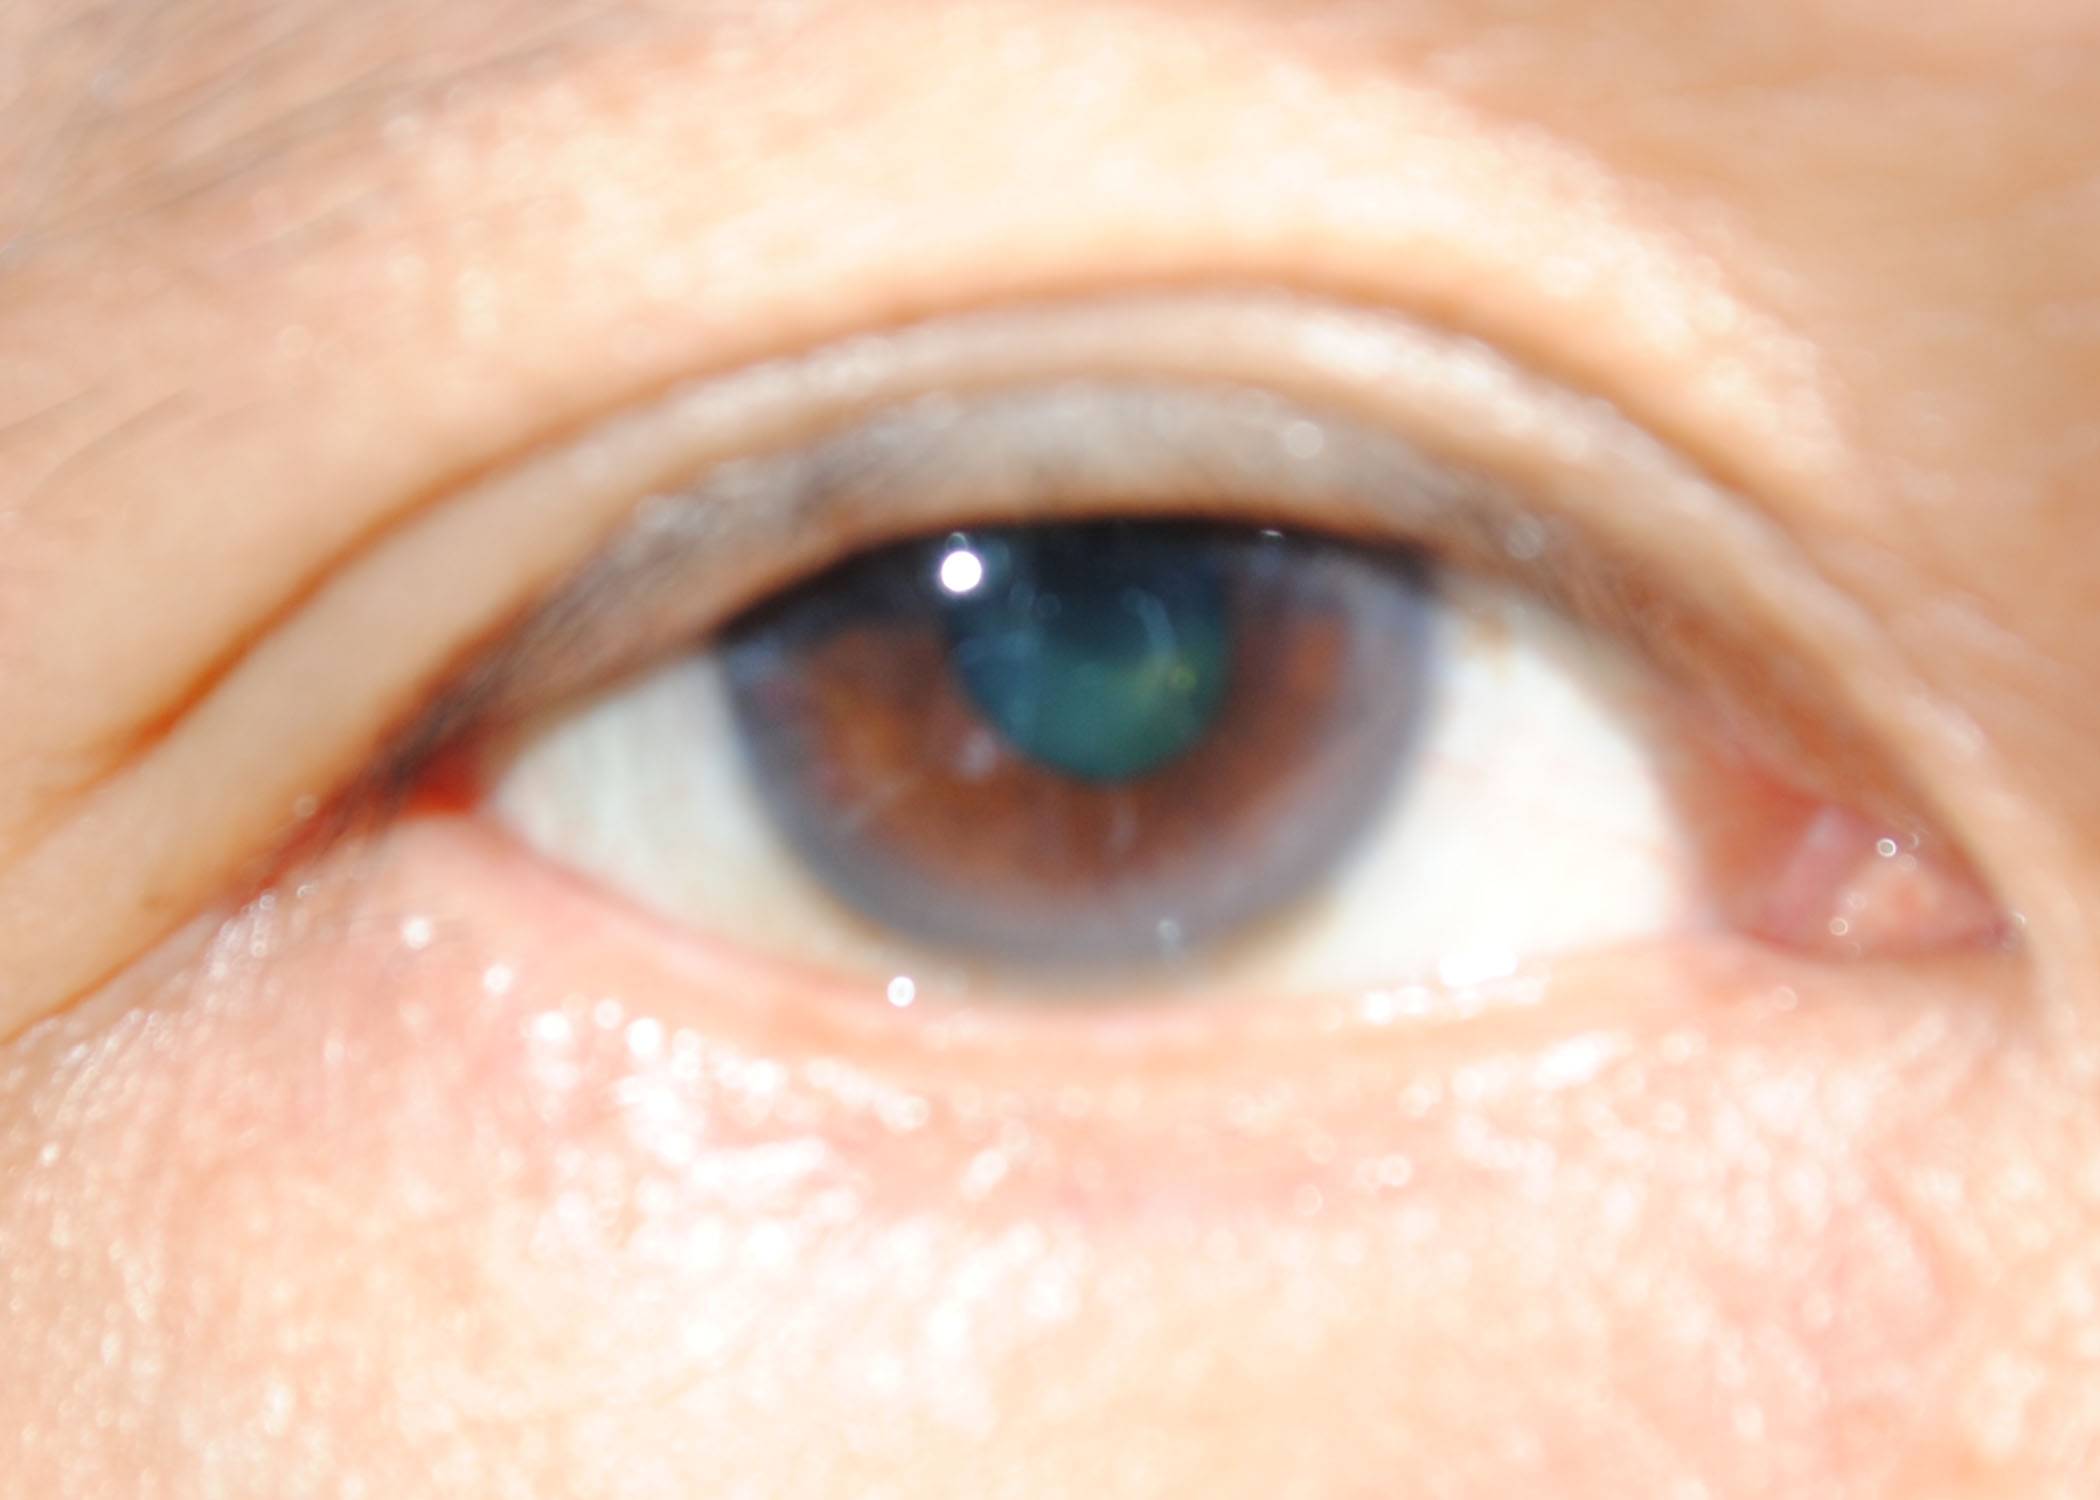 ... -colors in the eye's pupil, cornea and iris I.jpg - Wikimedia Commons Brown Eyes Iris